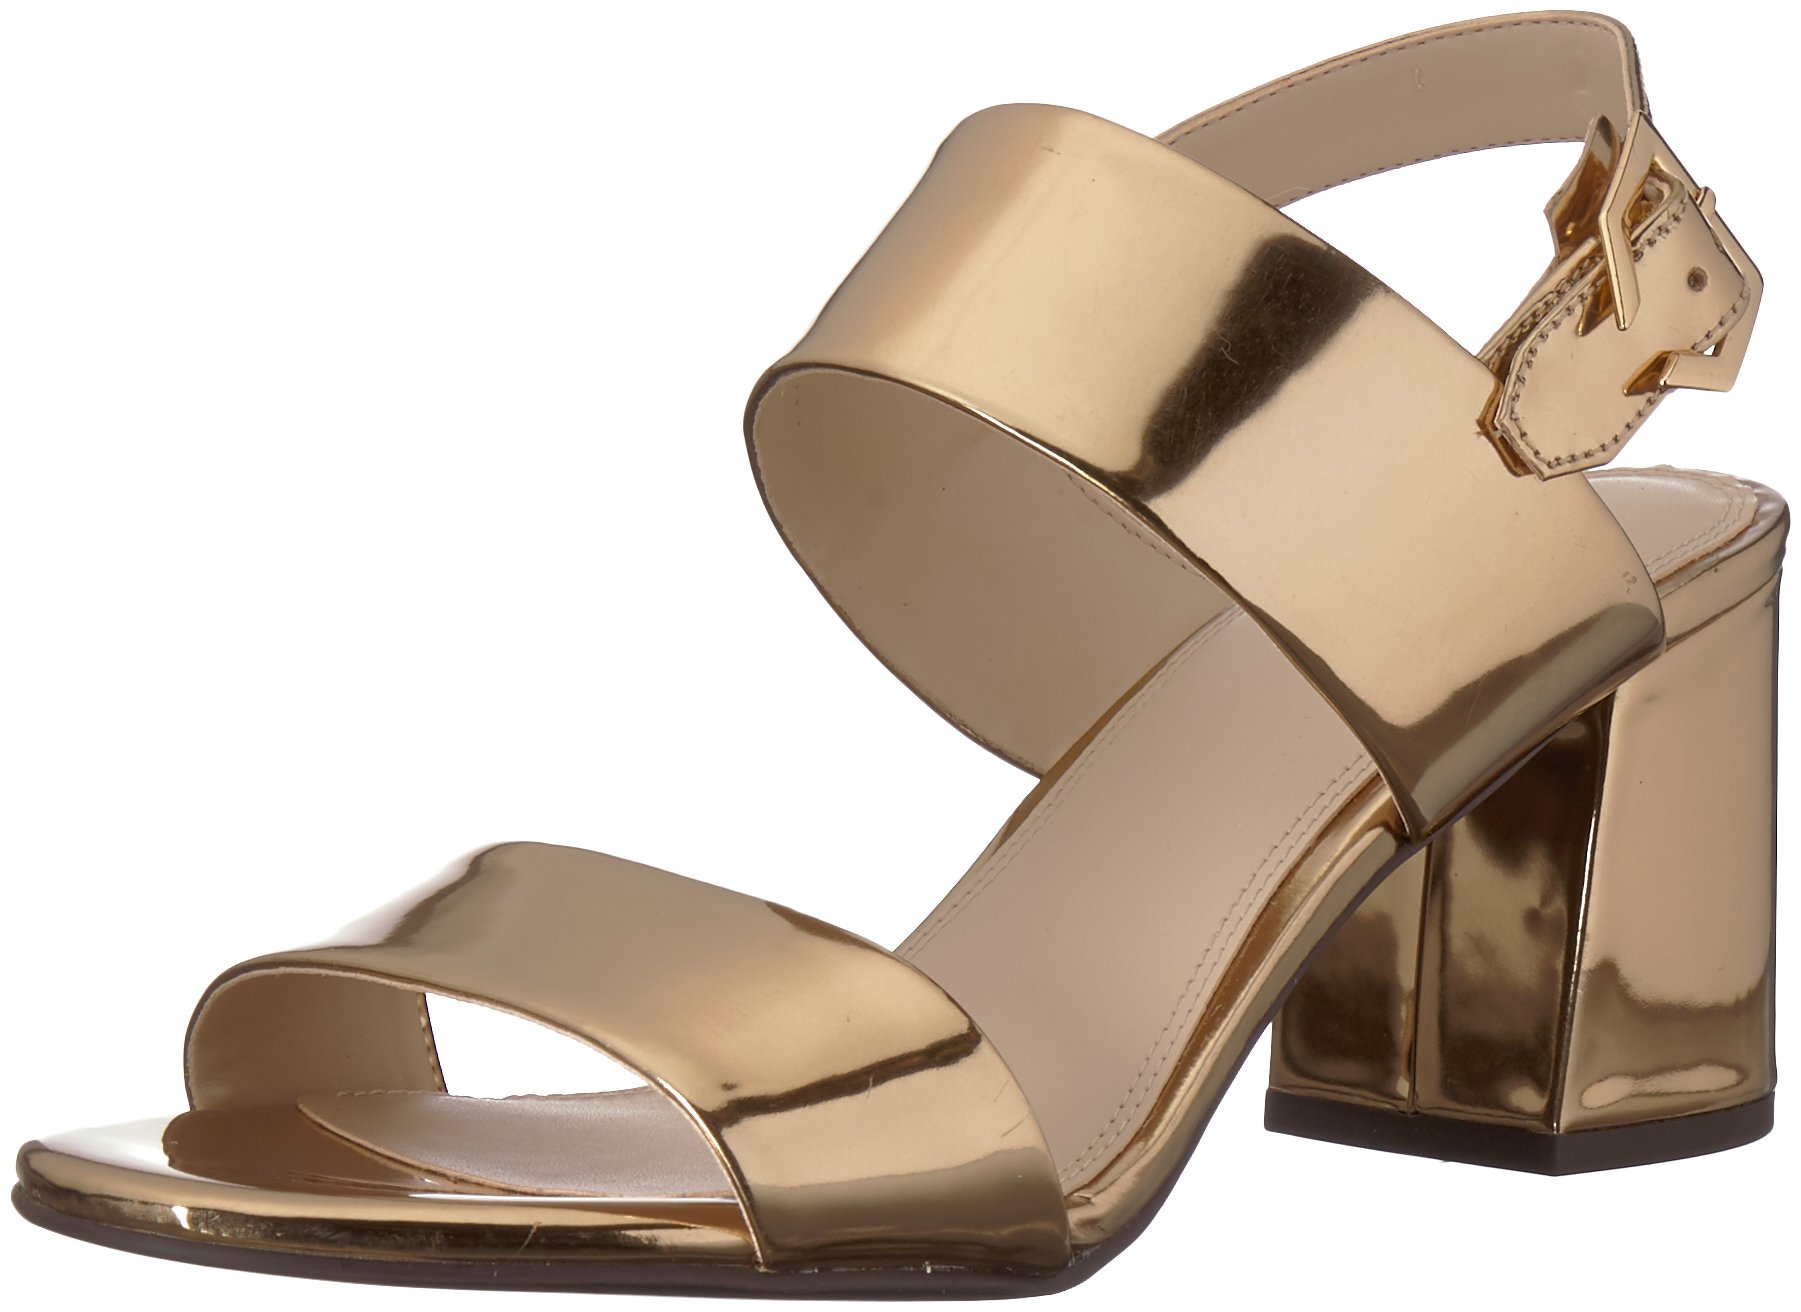 Cole Haan Women's Blakely Mid Heeled Sandal, Gold Specchio, 8.5 B US